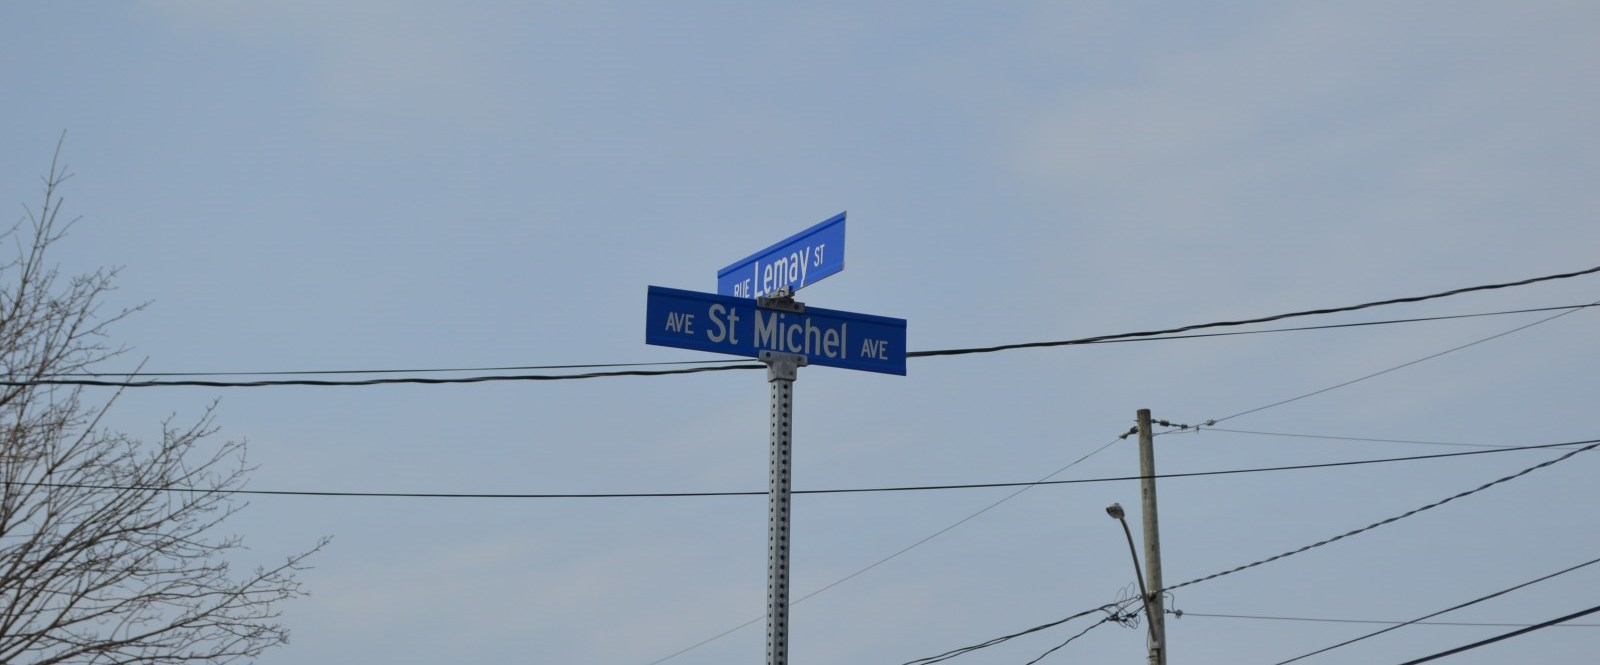 Lemay and St Michel street signs